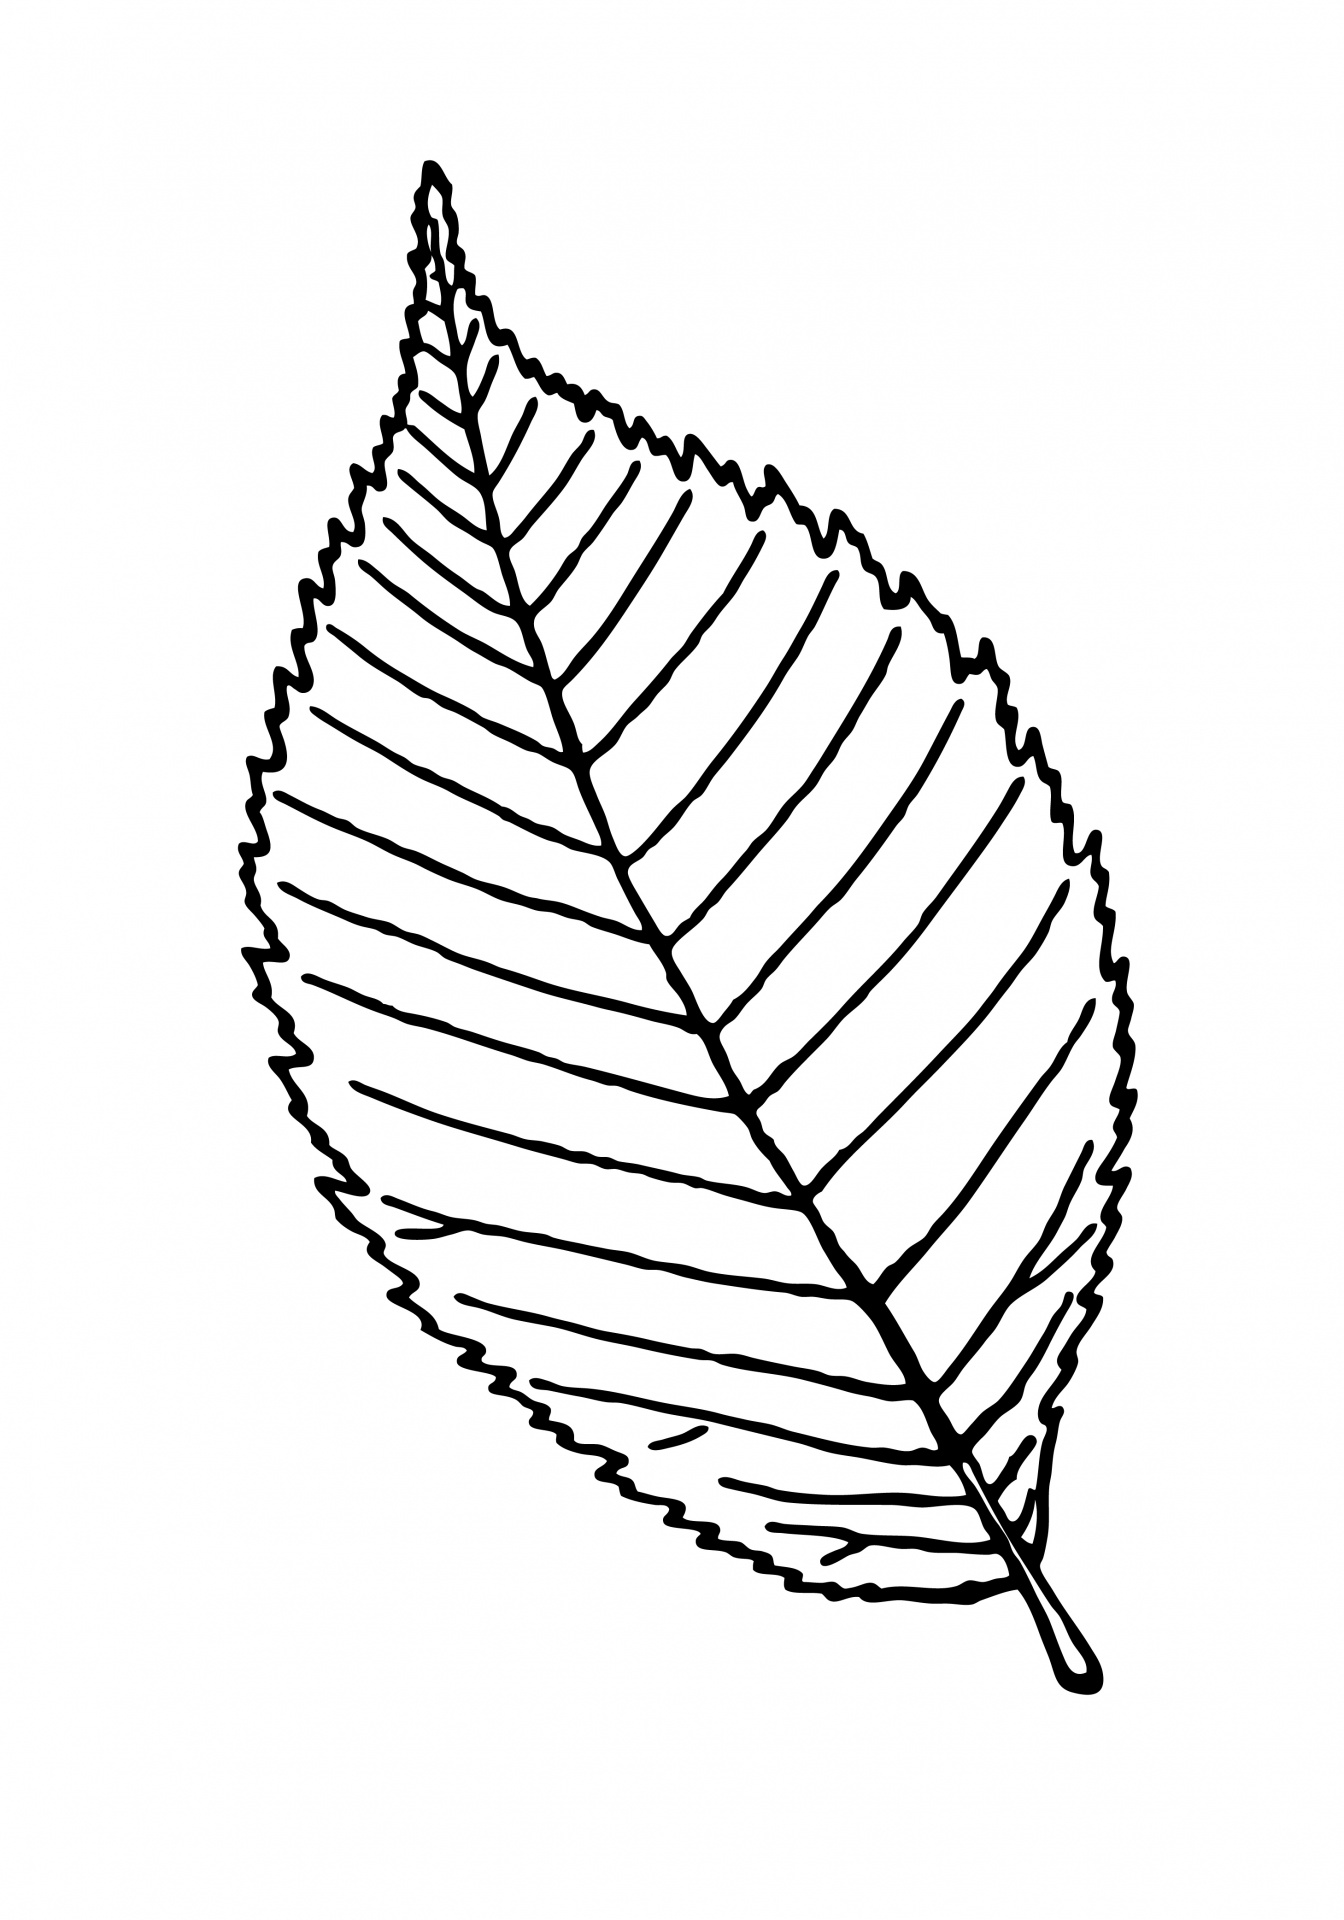 1344x1920 Leaf Outline Tree Outline With Leaves Clipart 2